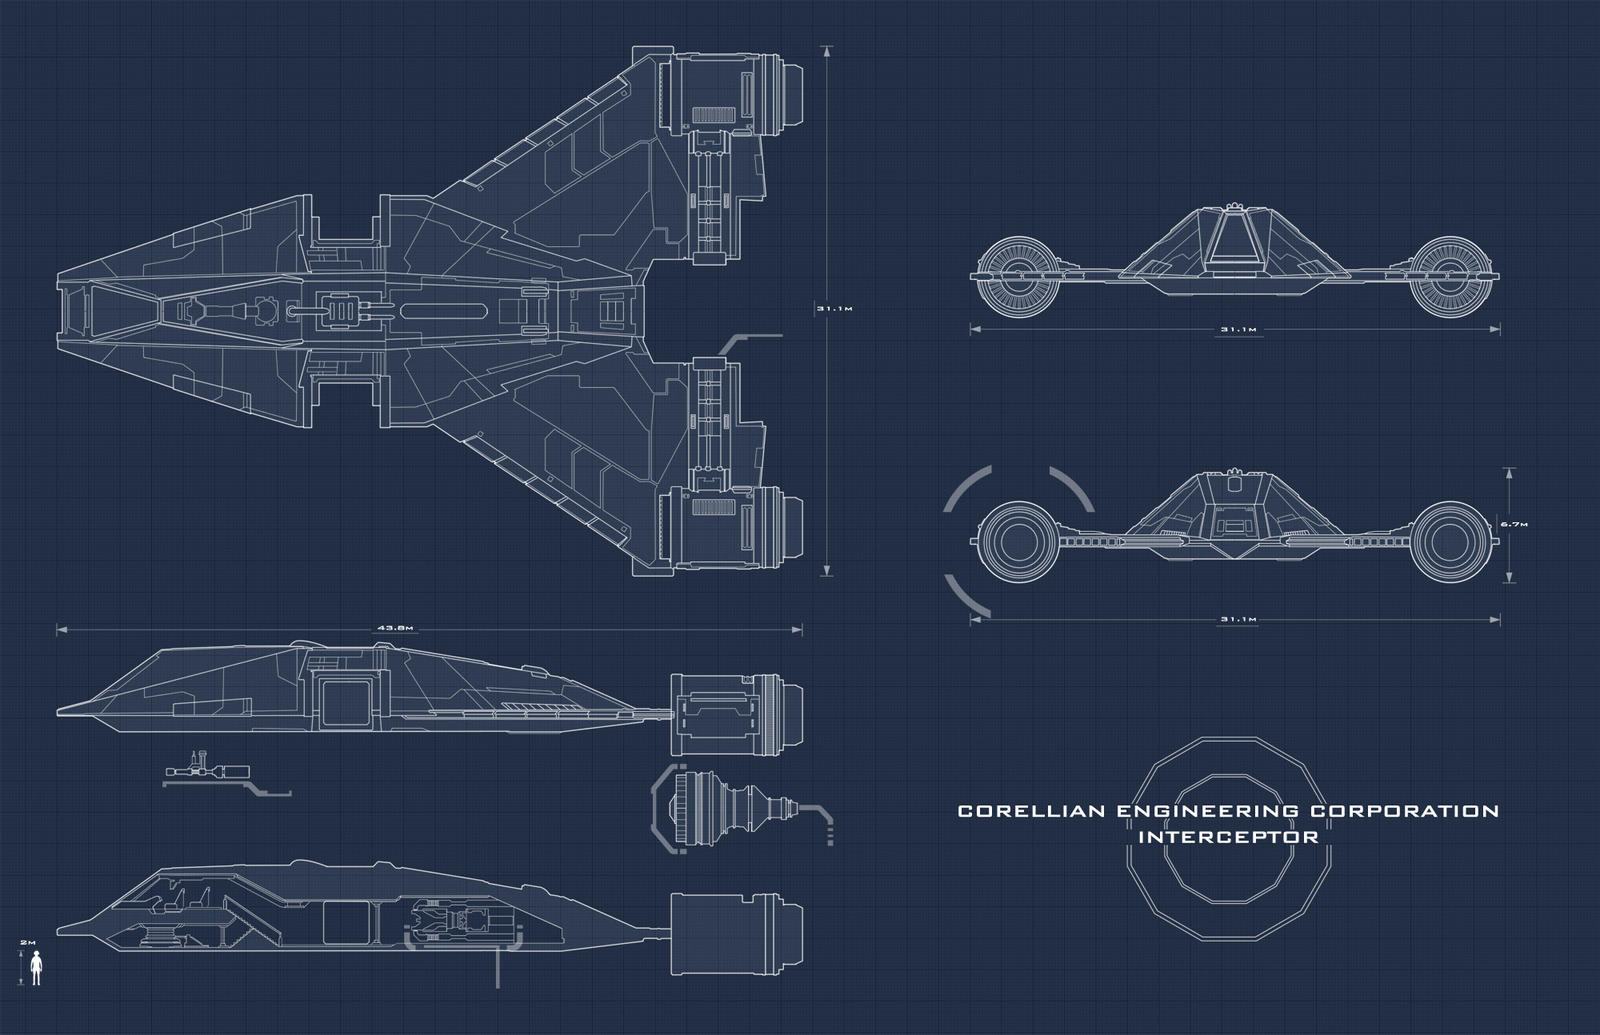 Star wars interceptor blueprint by adamkop on deviantart star wars interceptor blueprint by adamkop star wars interceptor blueprint by adamkop malvernweather Gallery